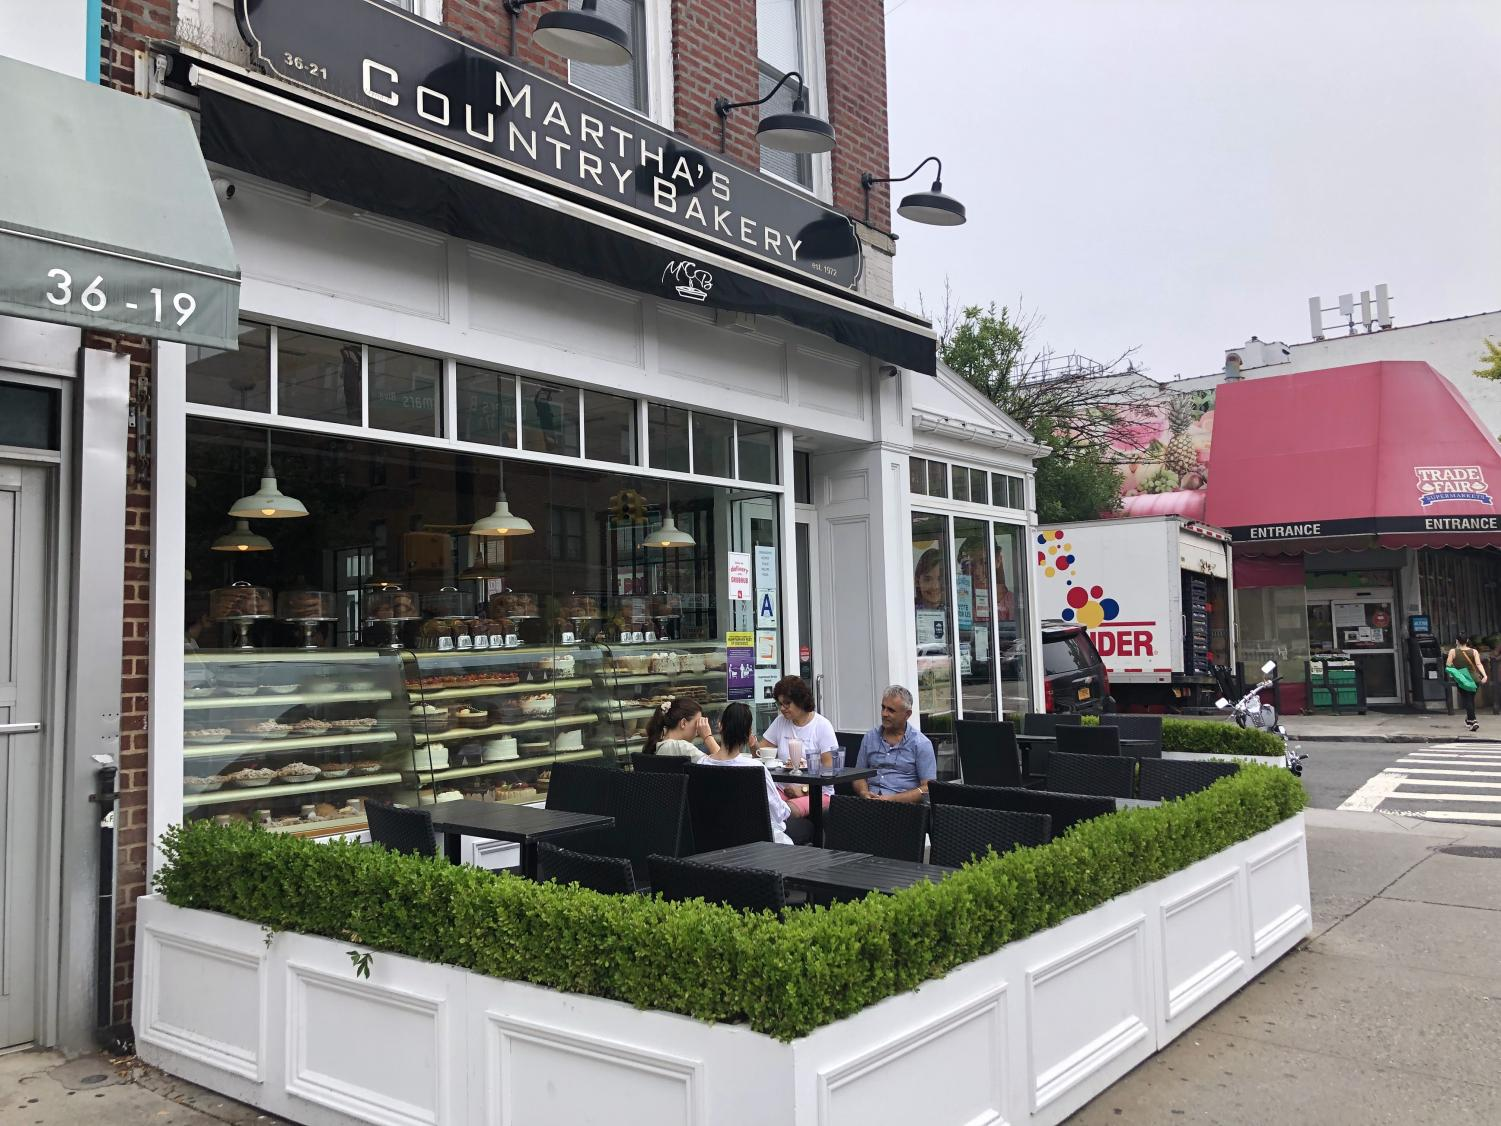 Martha's Country Bakery in Astoria with outdoor seating